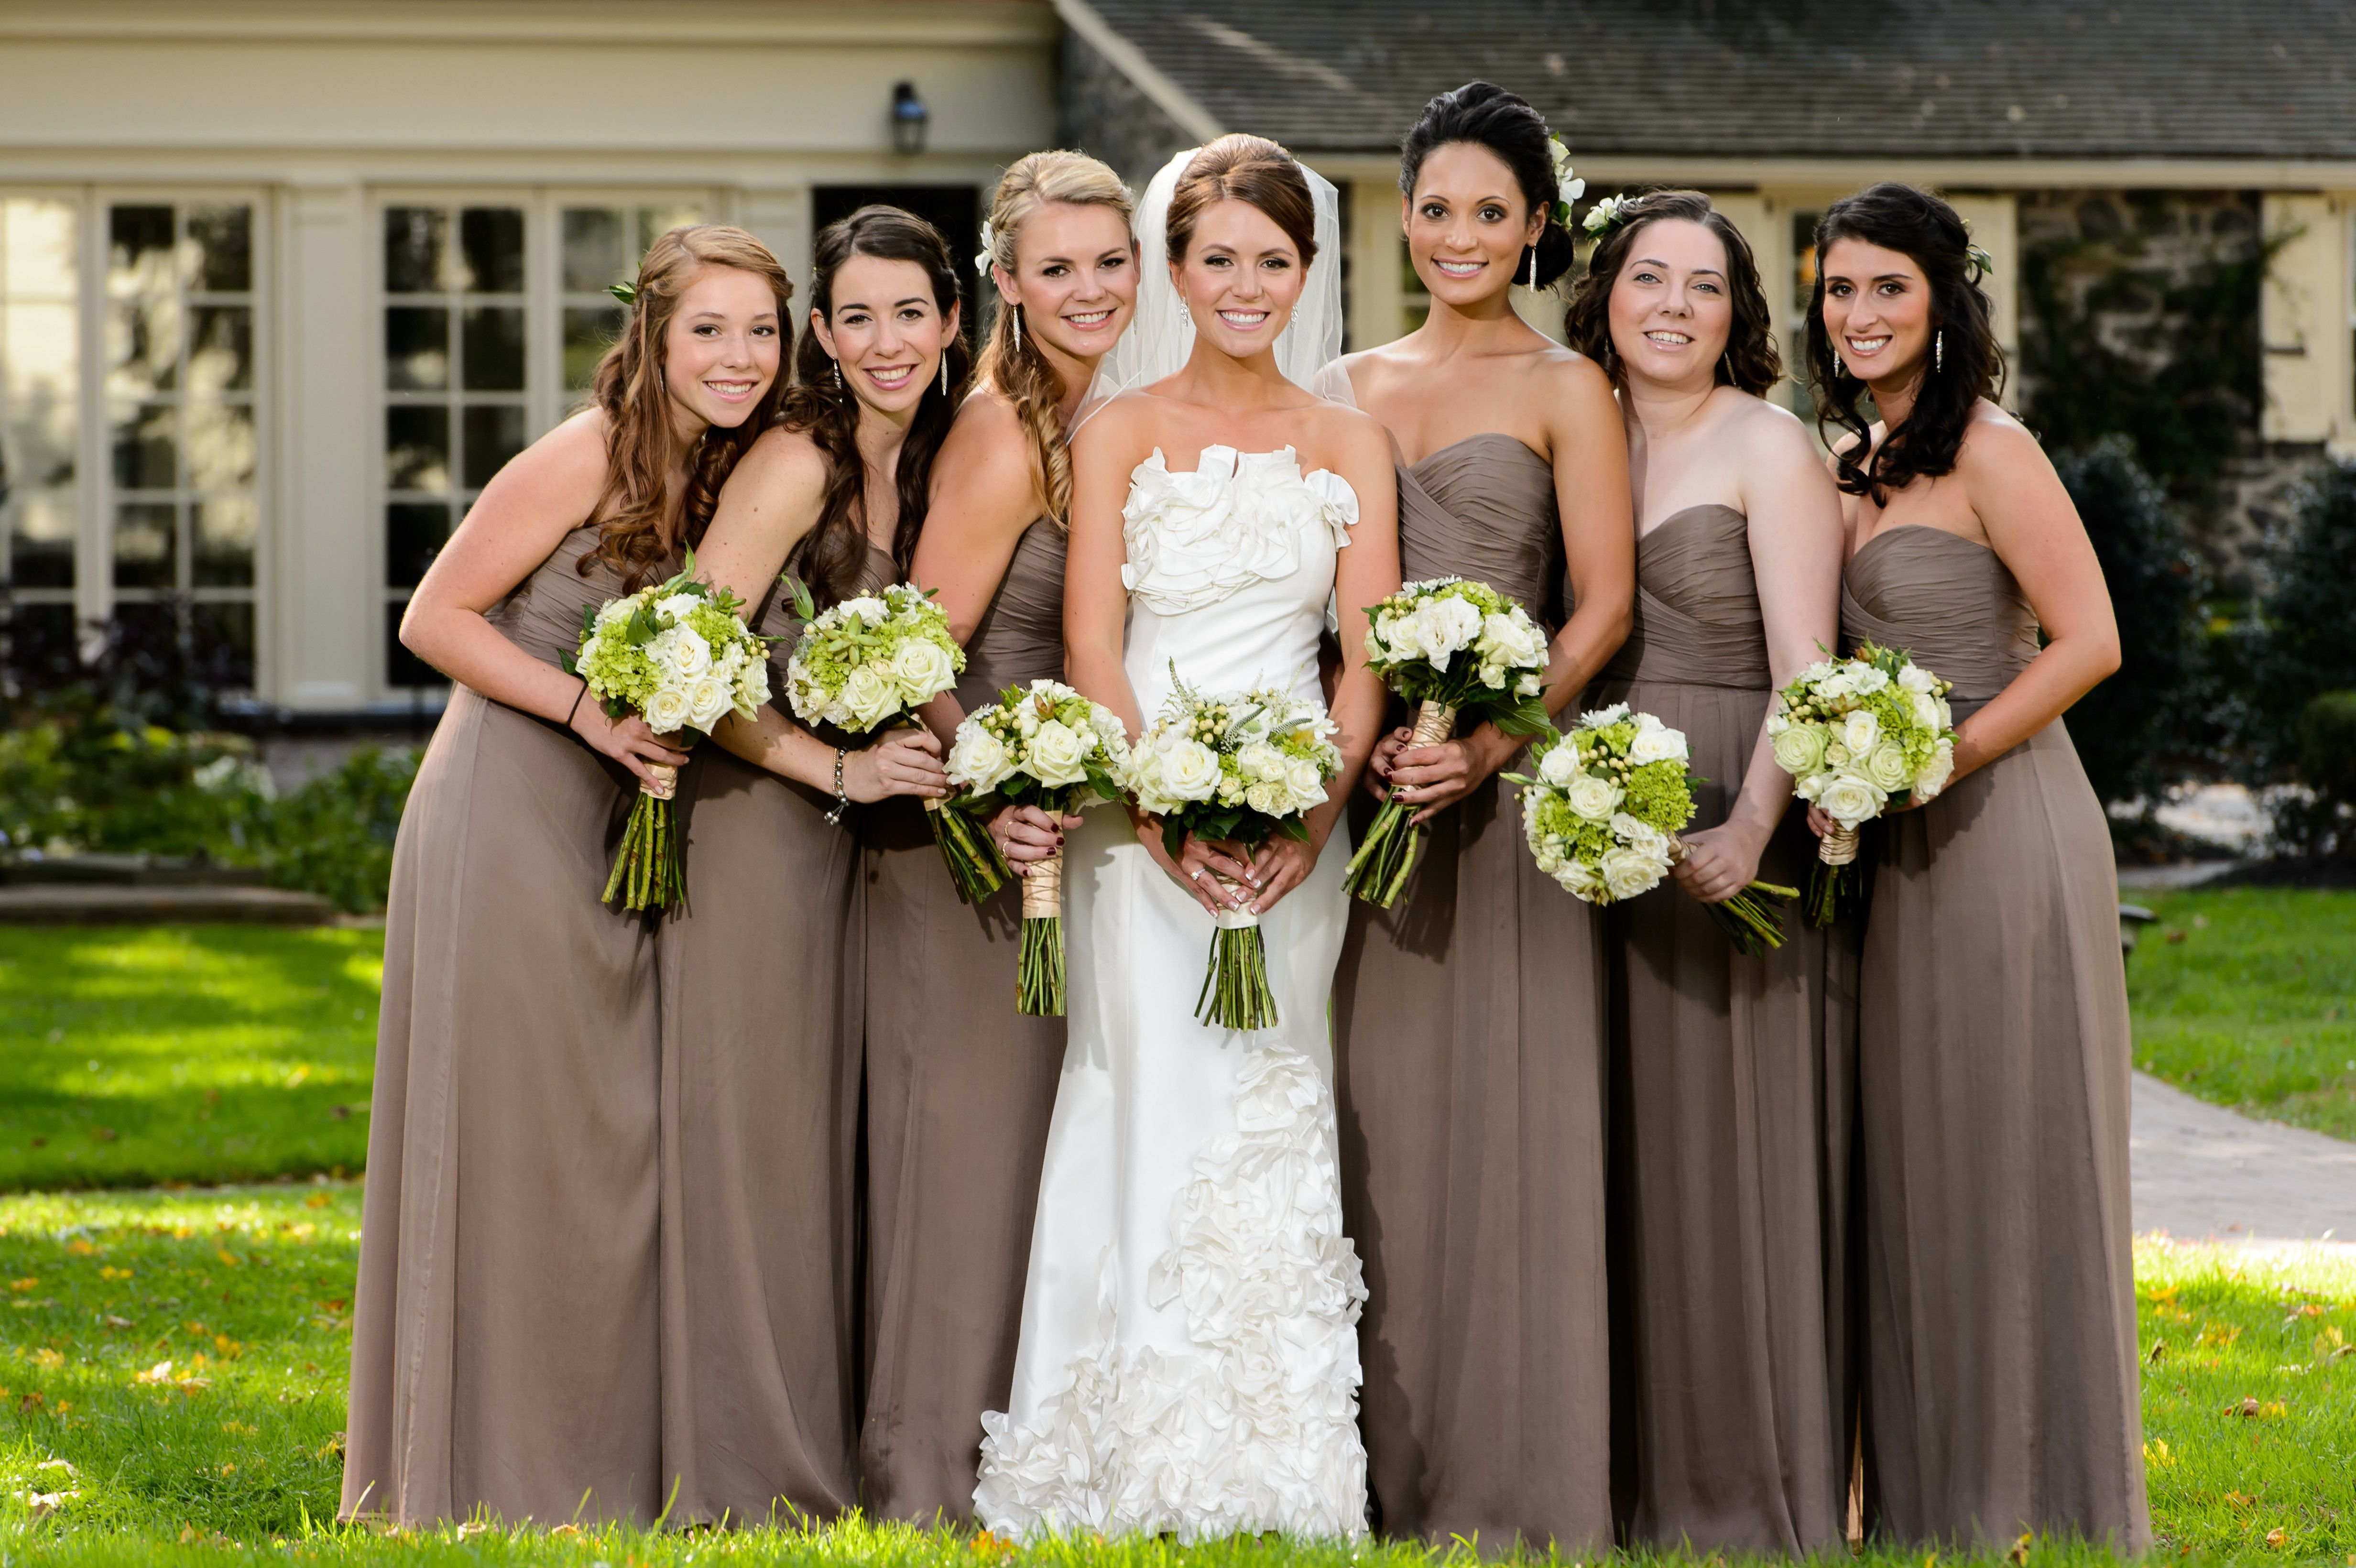 Rustic chic wedding sweetwater farm susan stripling photography rustic chic wedding sweetwater farm susan stripling photography amsale truffle bridesmaid dresses ombrellifo Image collections